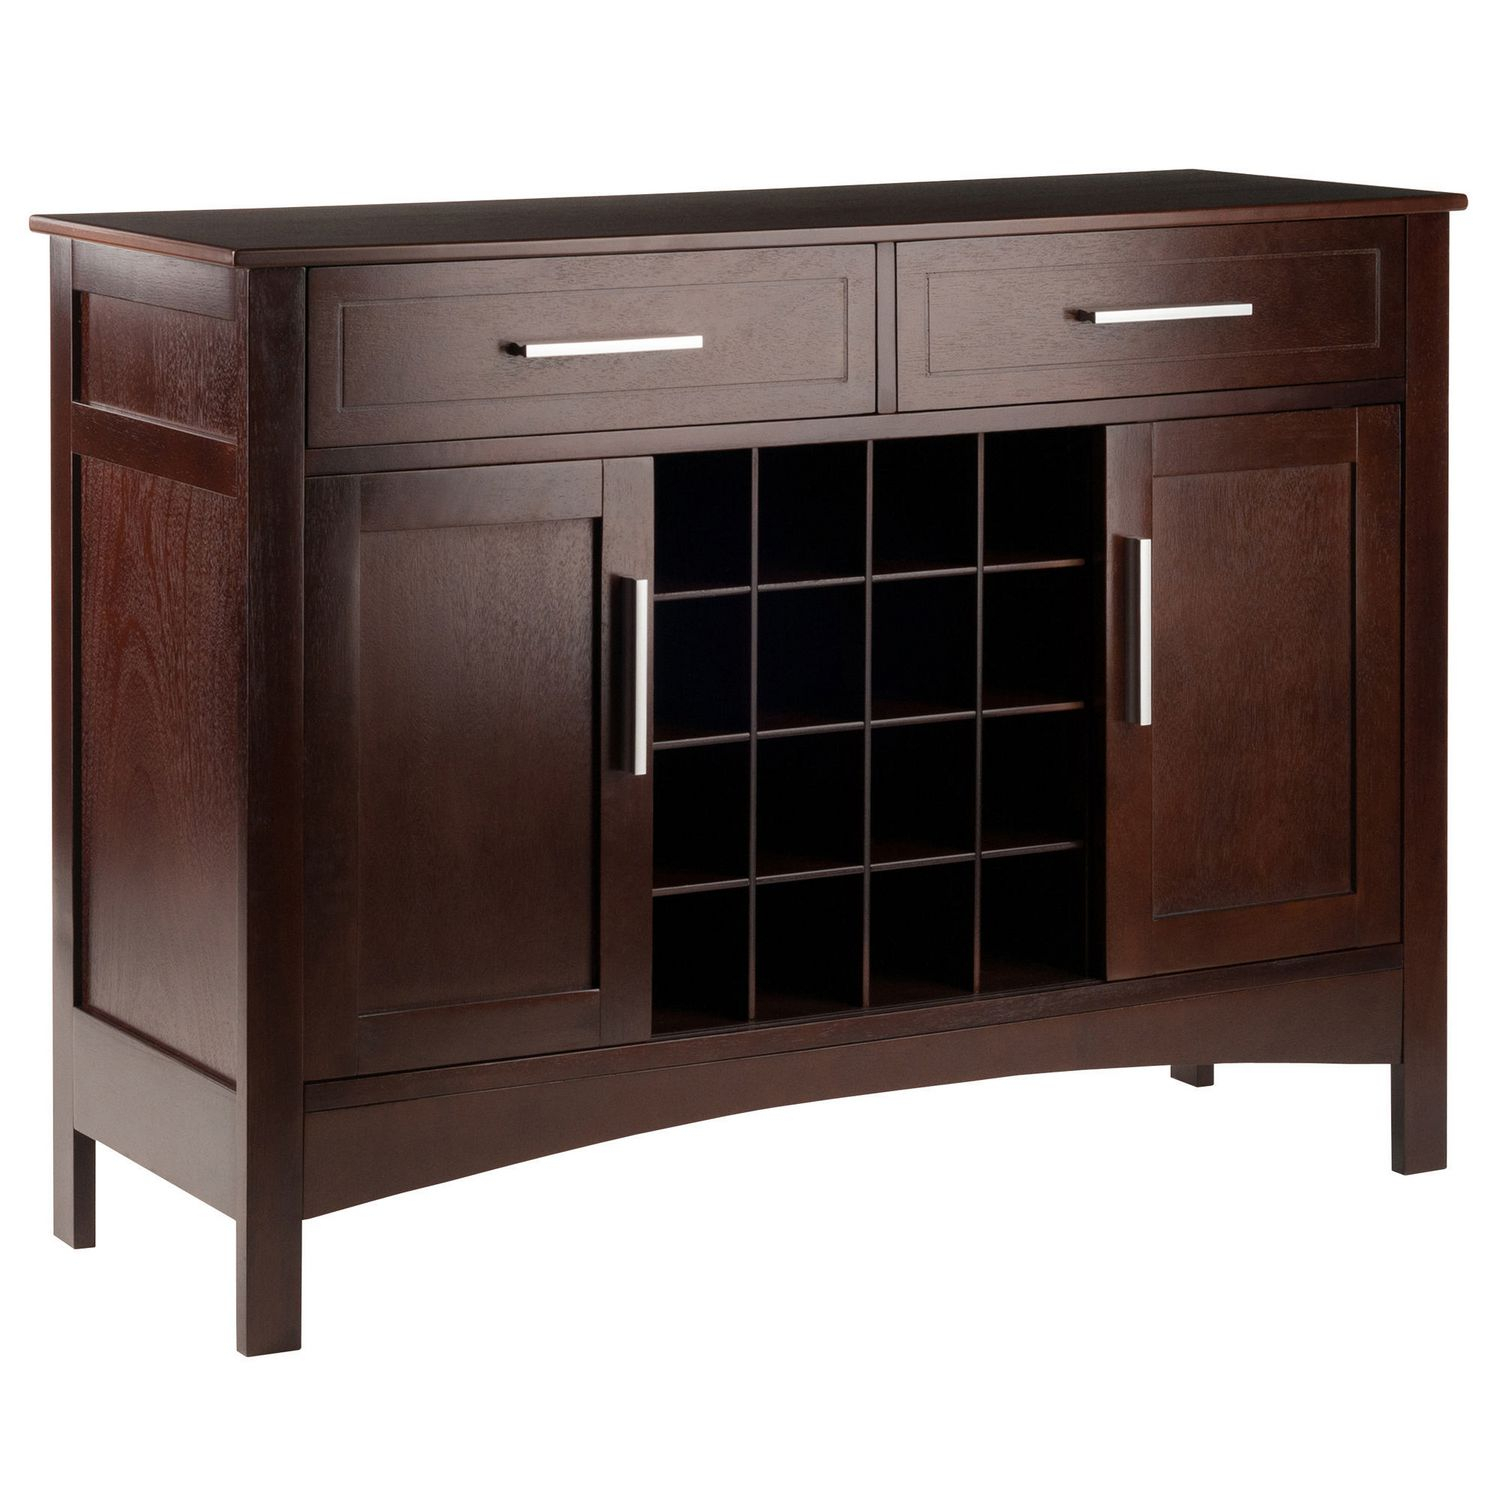 Winsome Gordon Buffet Cabinet/sideboard Cappuccino Finish Regarding Cappuccino Finished Buffets (View 28 of 30)